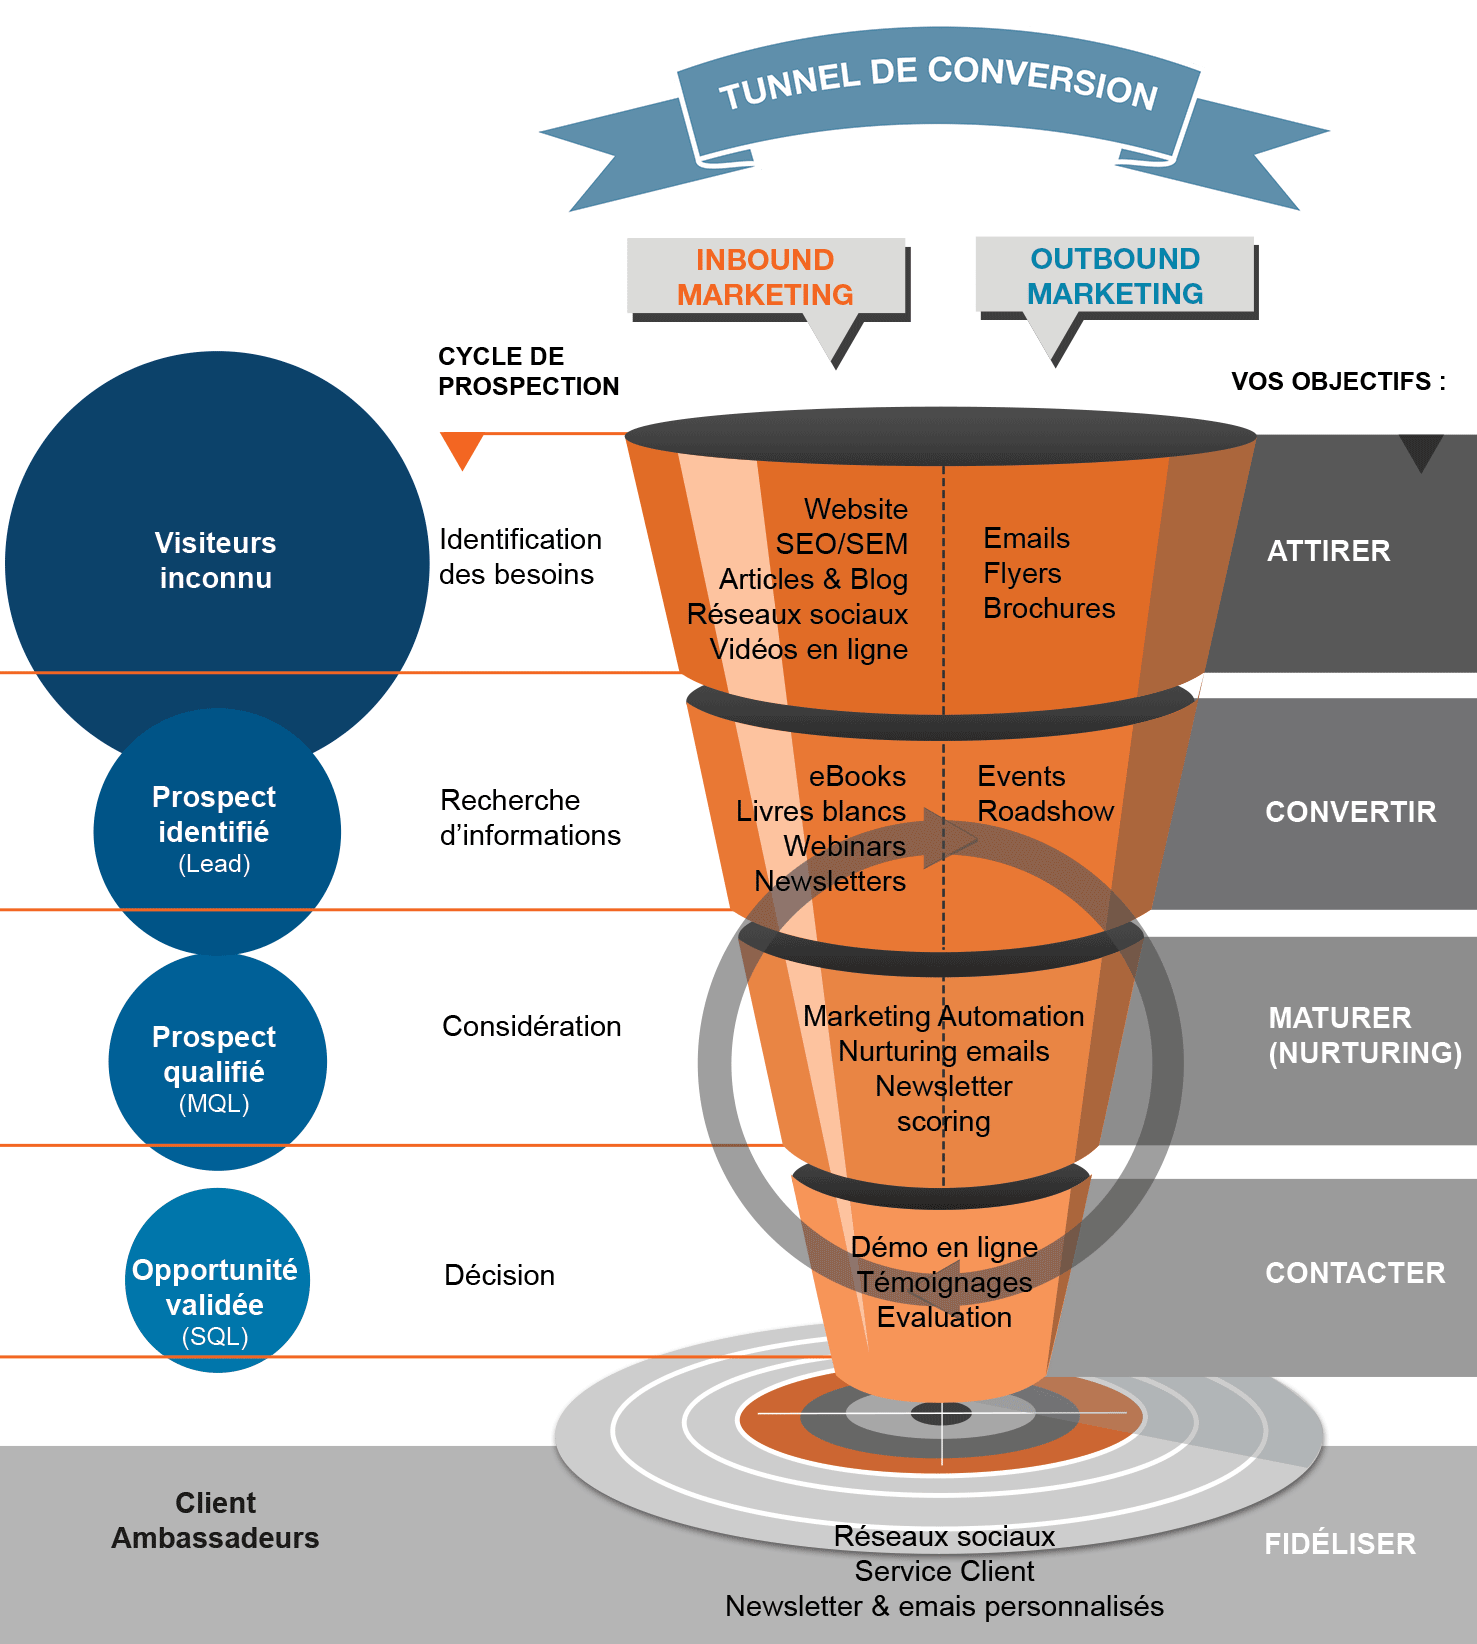 Tunnel de conversion Inbound Marketing vs Outbound Marketing